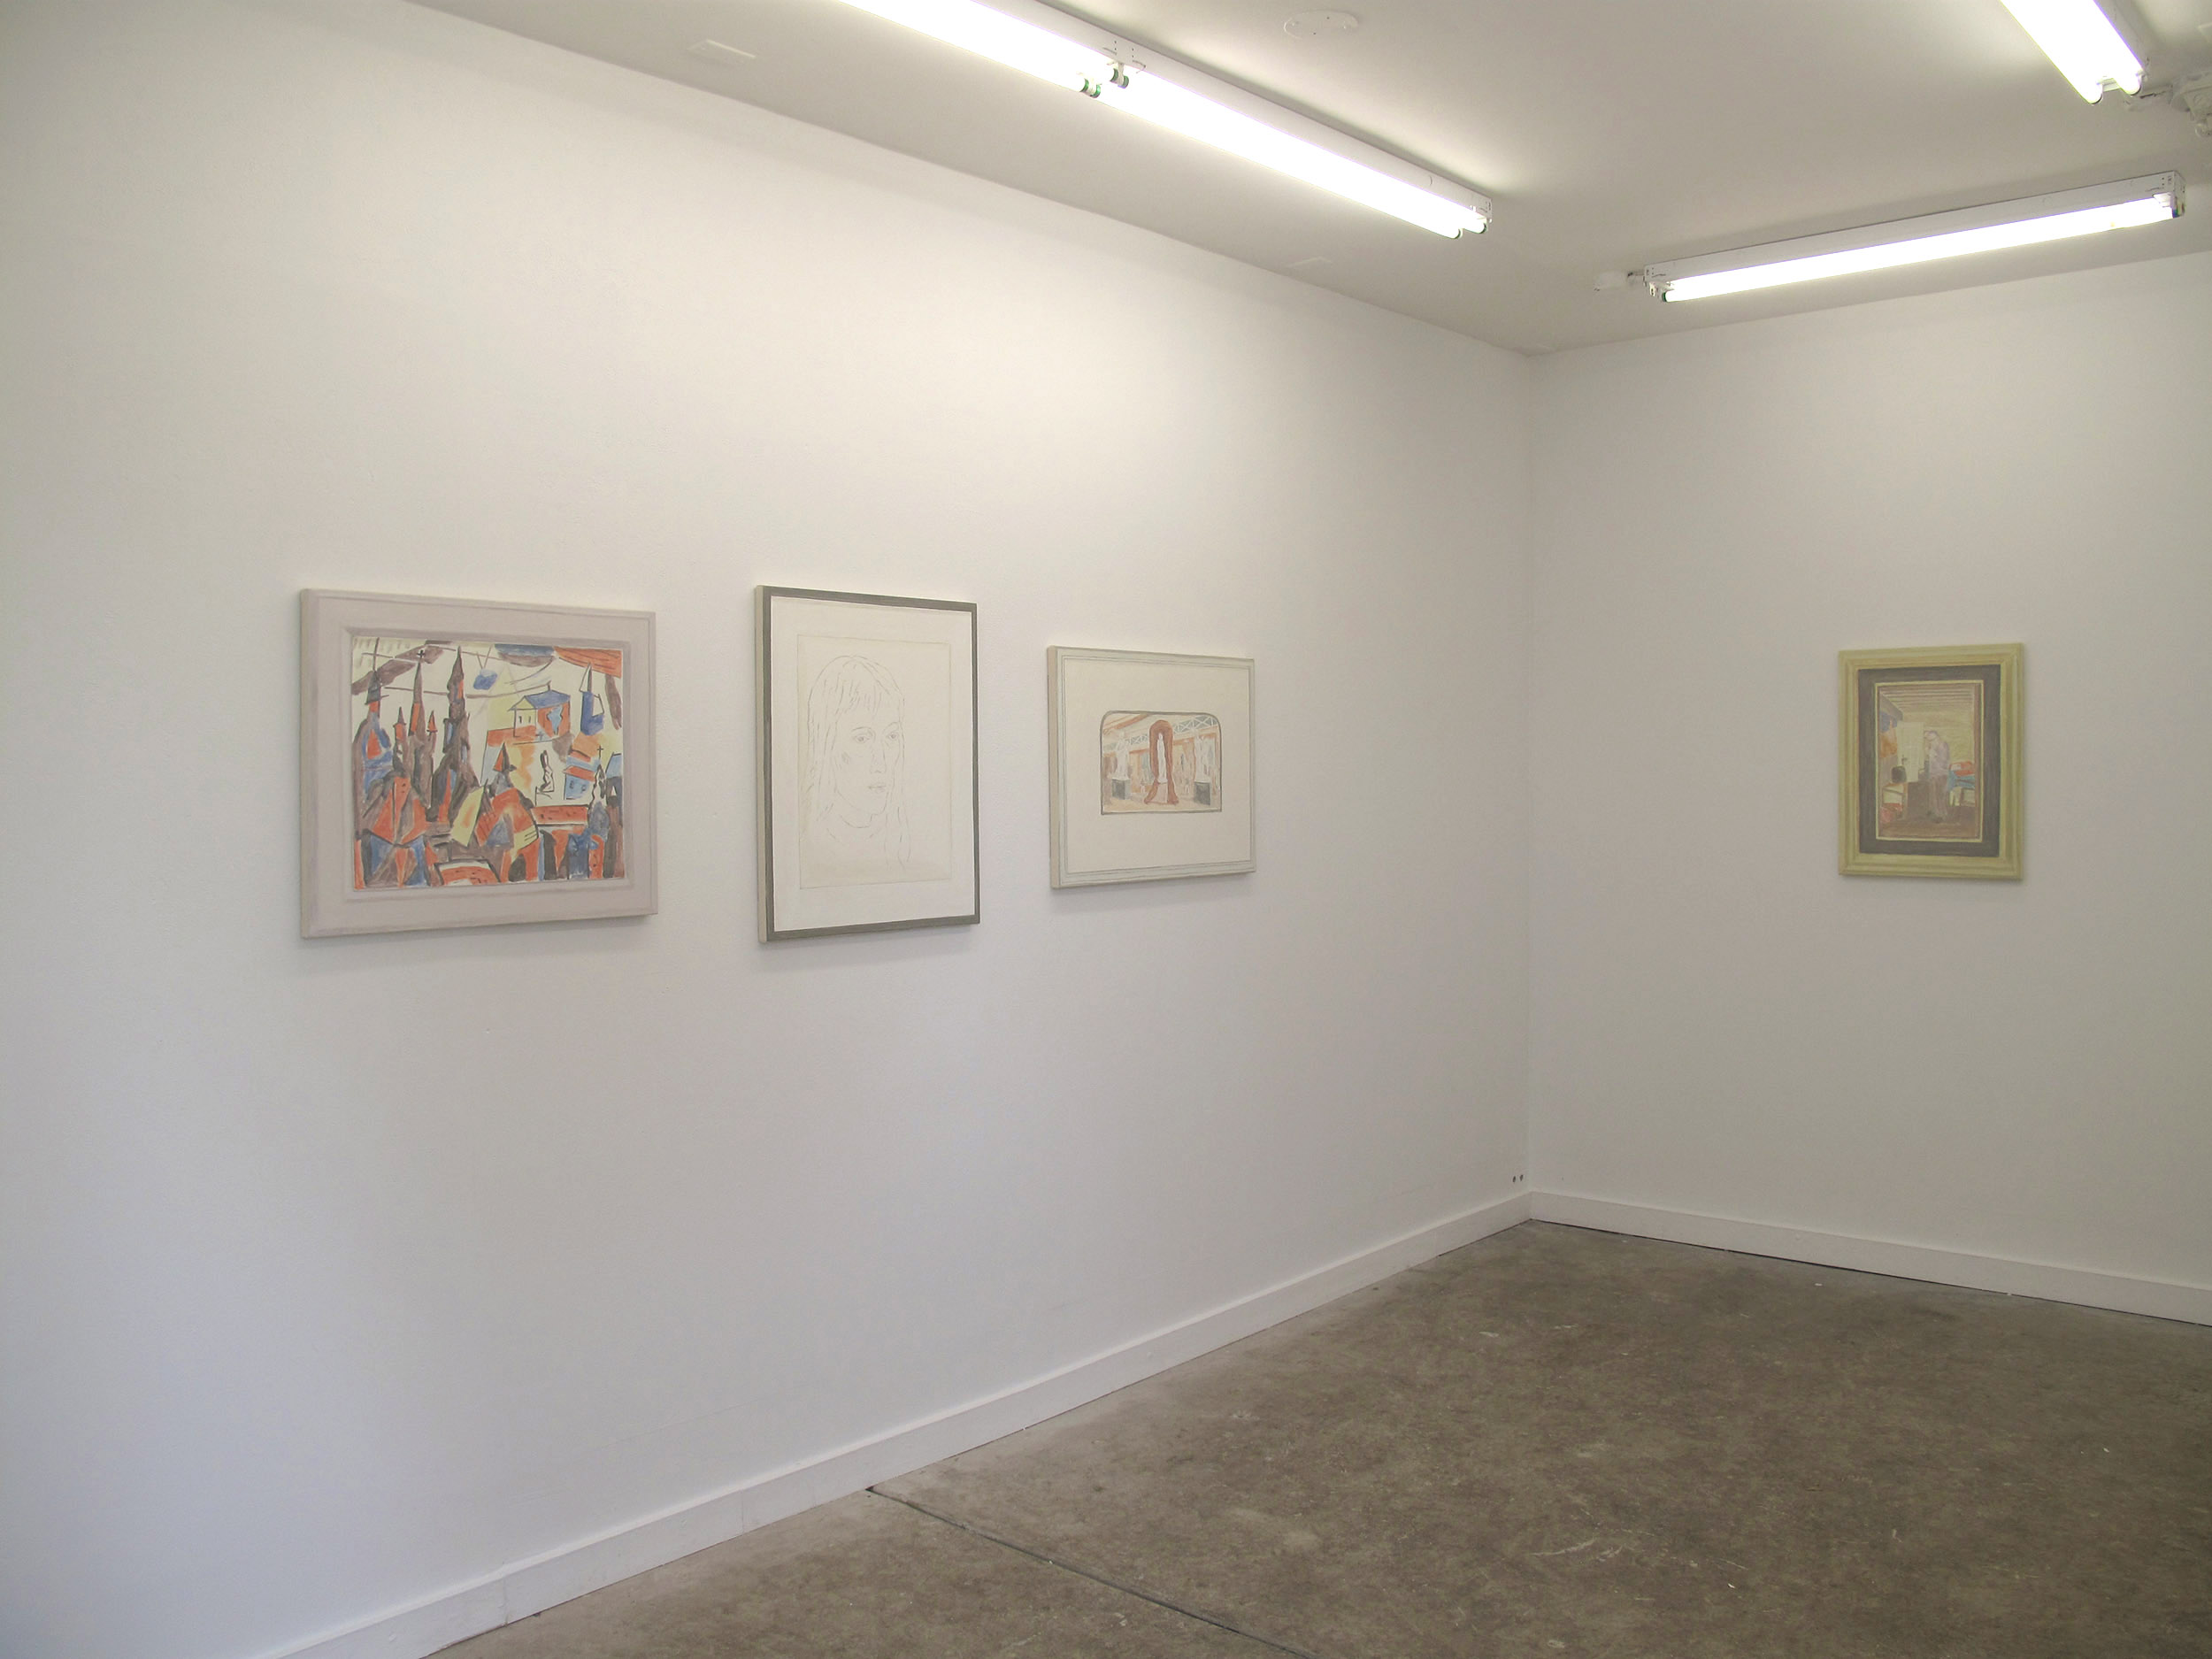 Paul P/Francesca Fuchs // The Suburban// April 7 – May 2, 2013